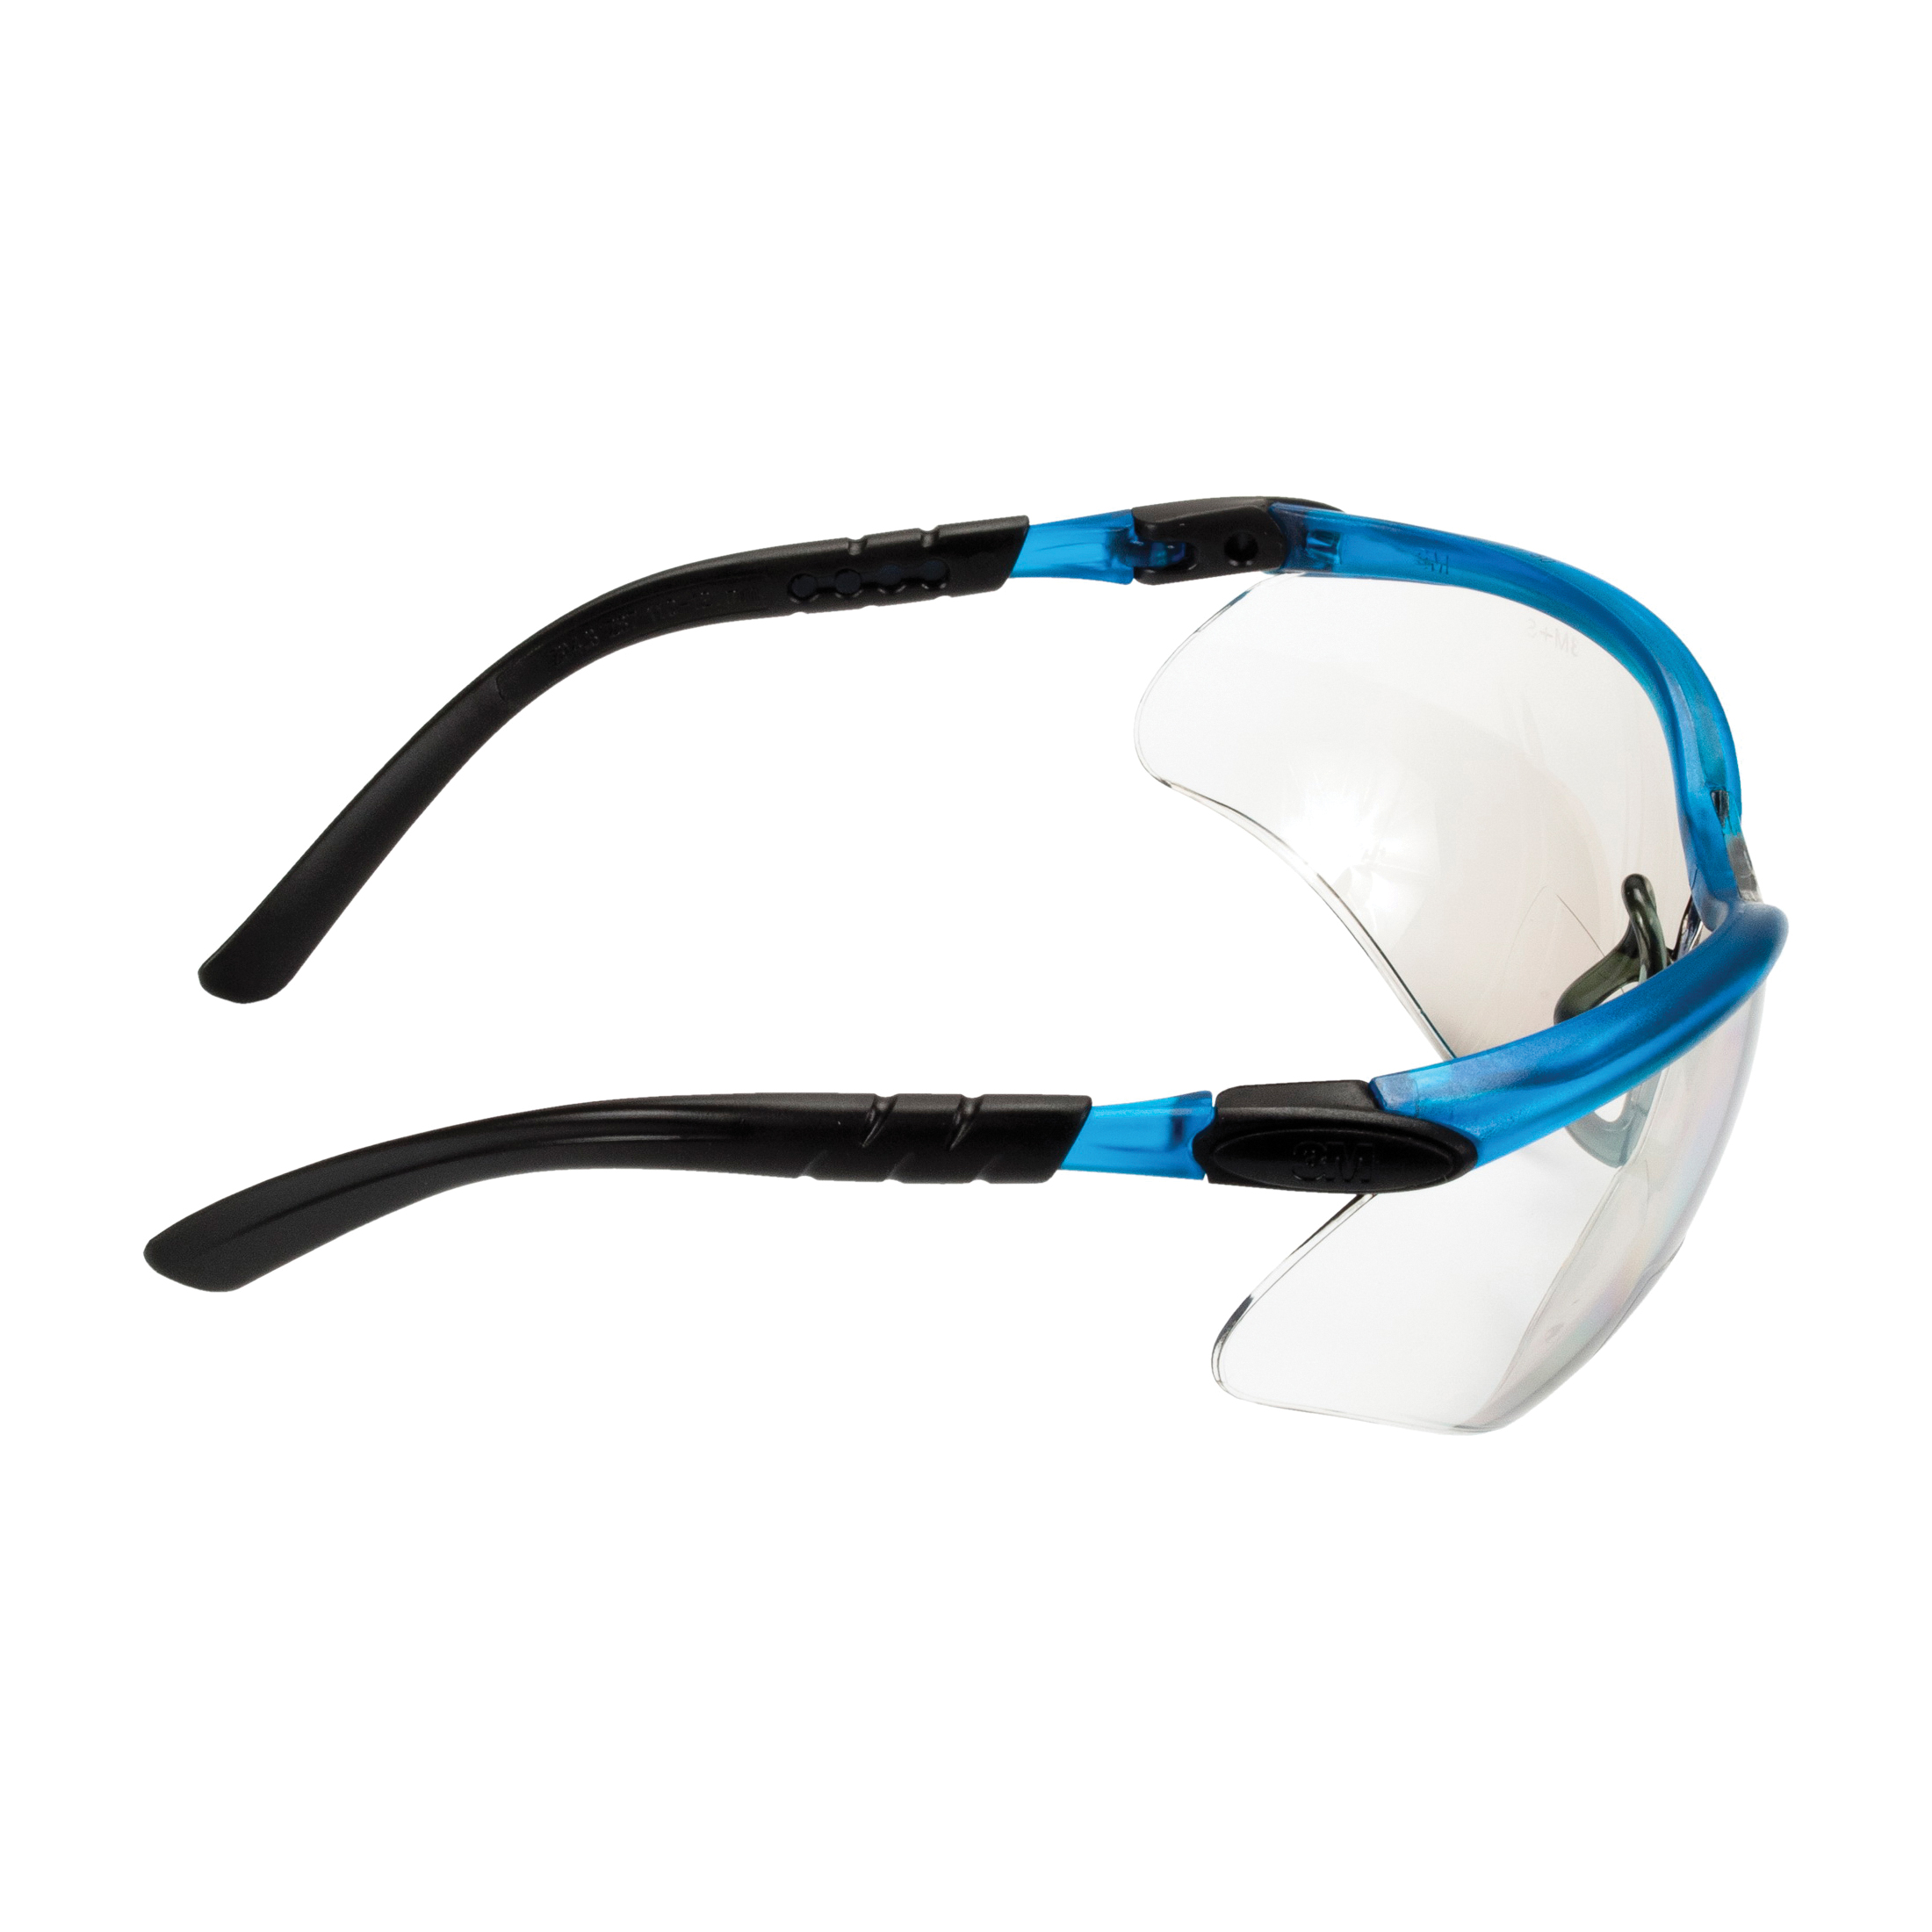 3M™ BX™ 078371-62046 11374-00000-20 Bi-Focal Lens Lightweight Reader Protective Eyewear, 1.5 Diopter, Clear Lens, Black/Silver Plastic Frame, Polycarbonate Lens, 99.9% UV Protection, Specifications Met: ANSI Z87.1-2015, CSA Z94.3-2007